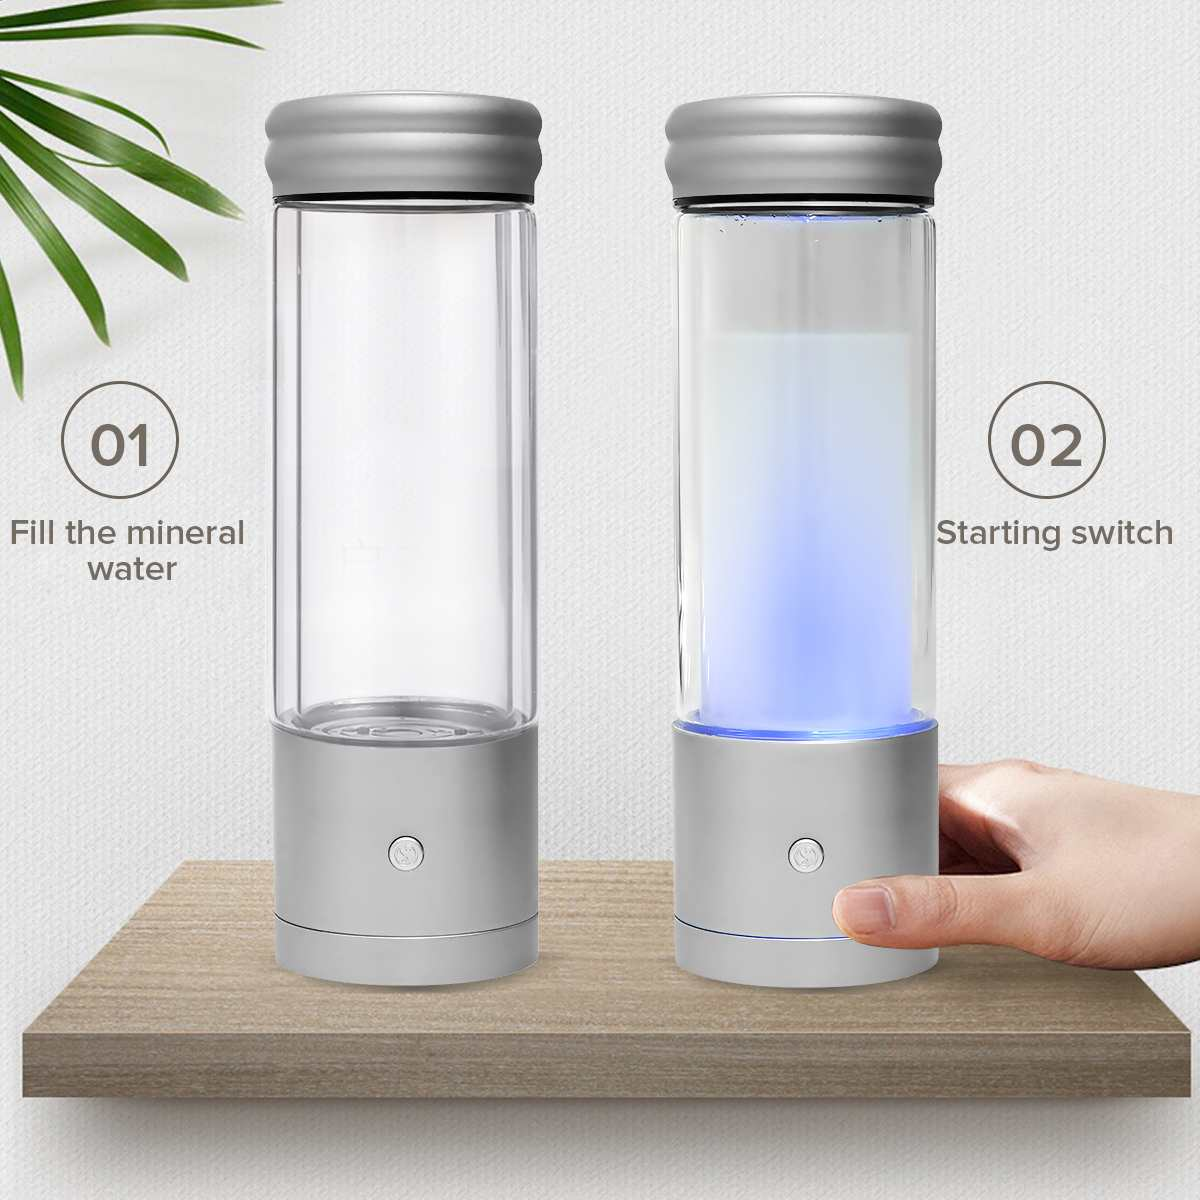 AUGIENB 350ml H2 Rich Hydrogen Water Bottle Alkaline Ionizer Generator Healthy Anti-Aging USB Rechargeable With RGB LED Light